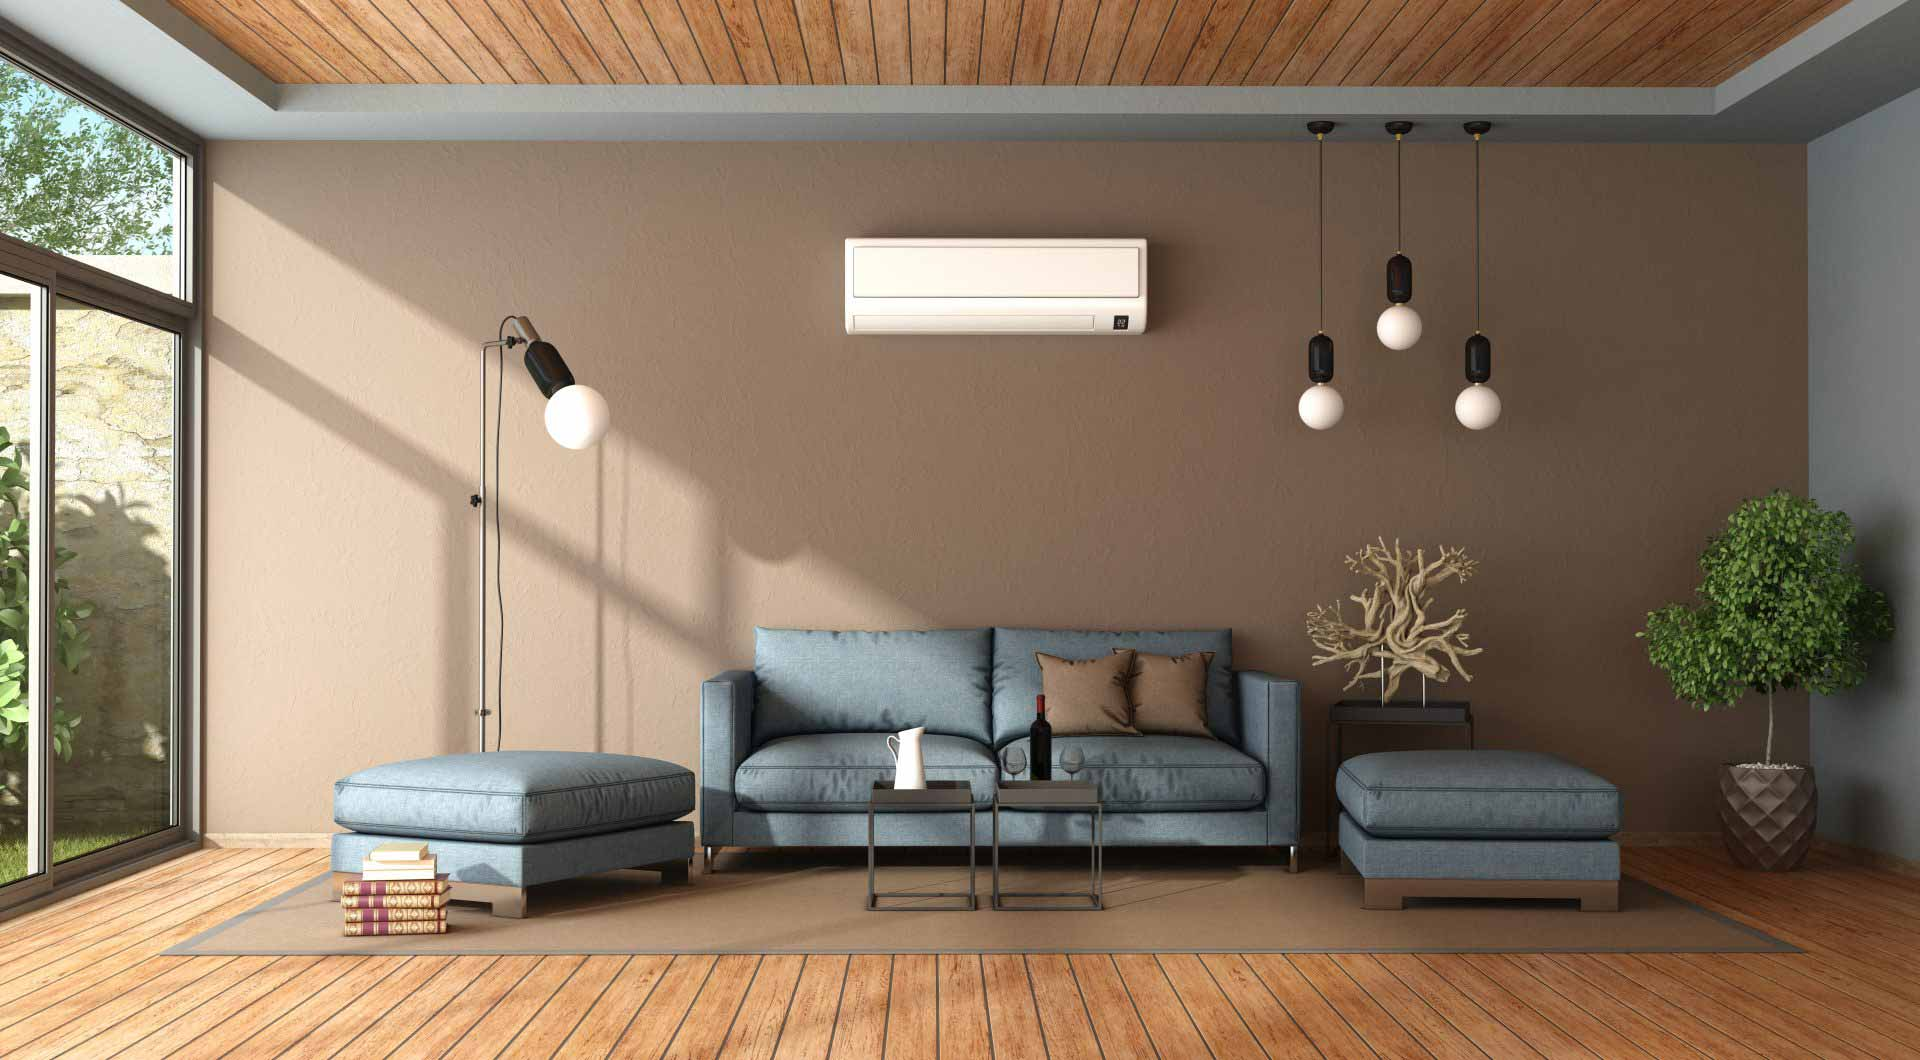 blue-and-brown-living-room-with-air-conditioner-P9XZDRD-e1574417919785